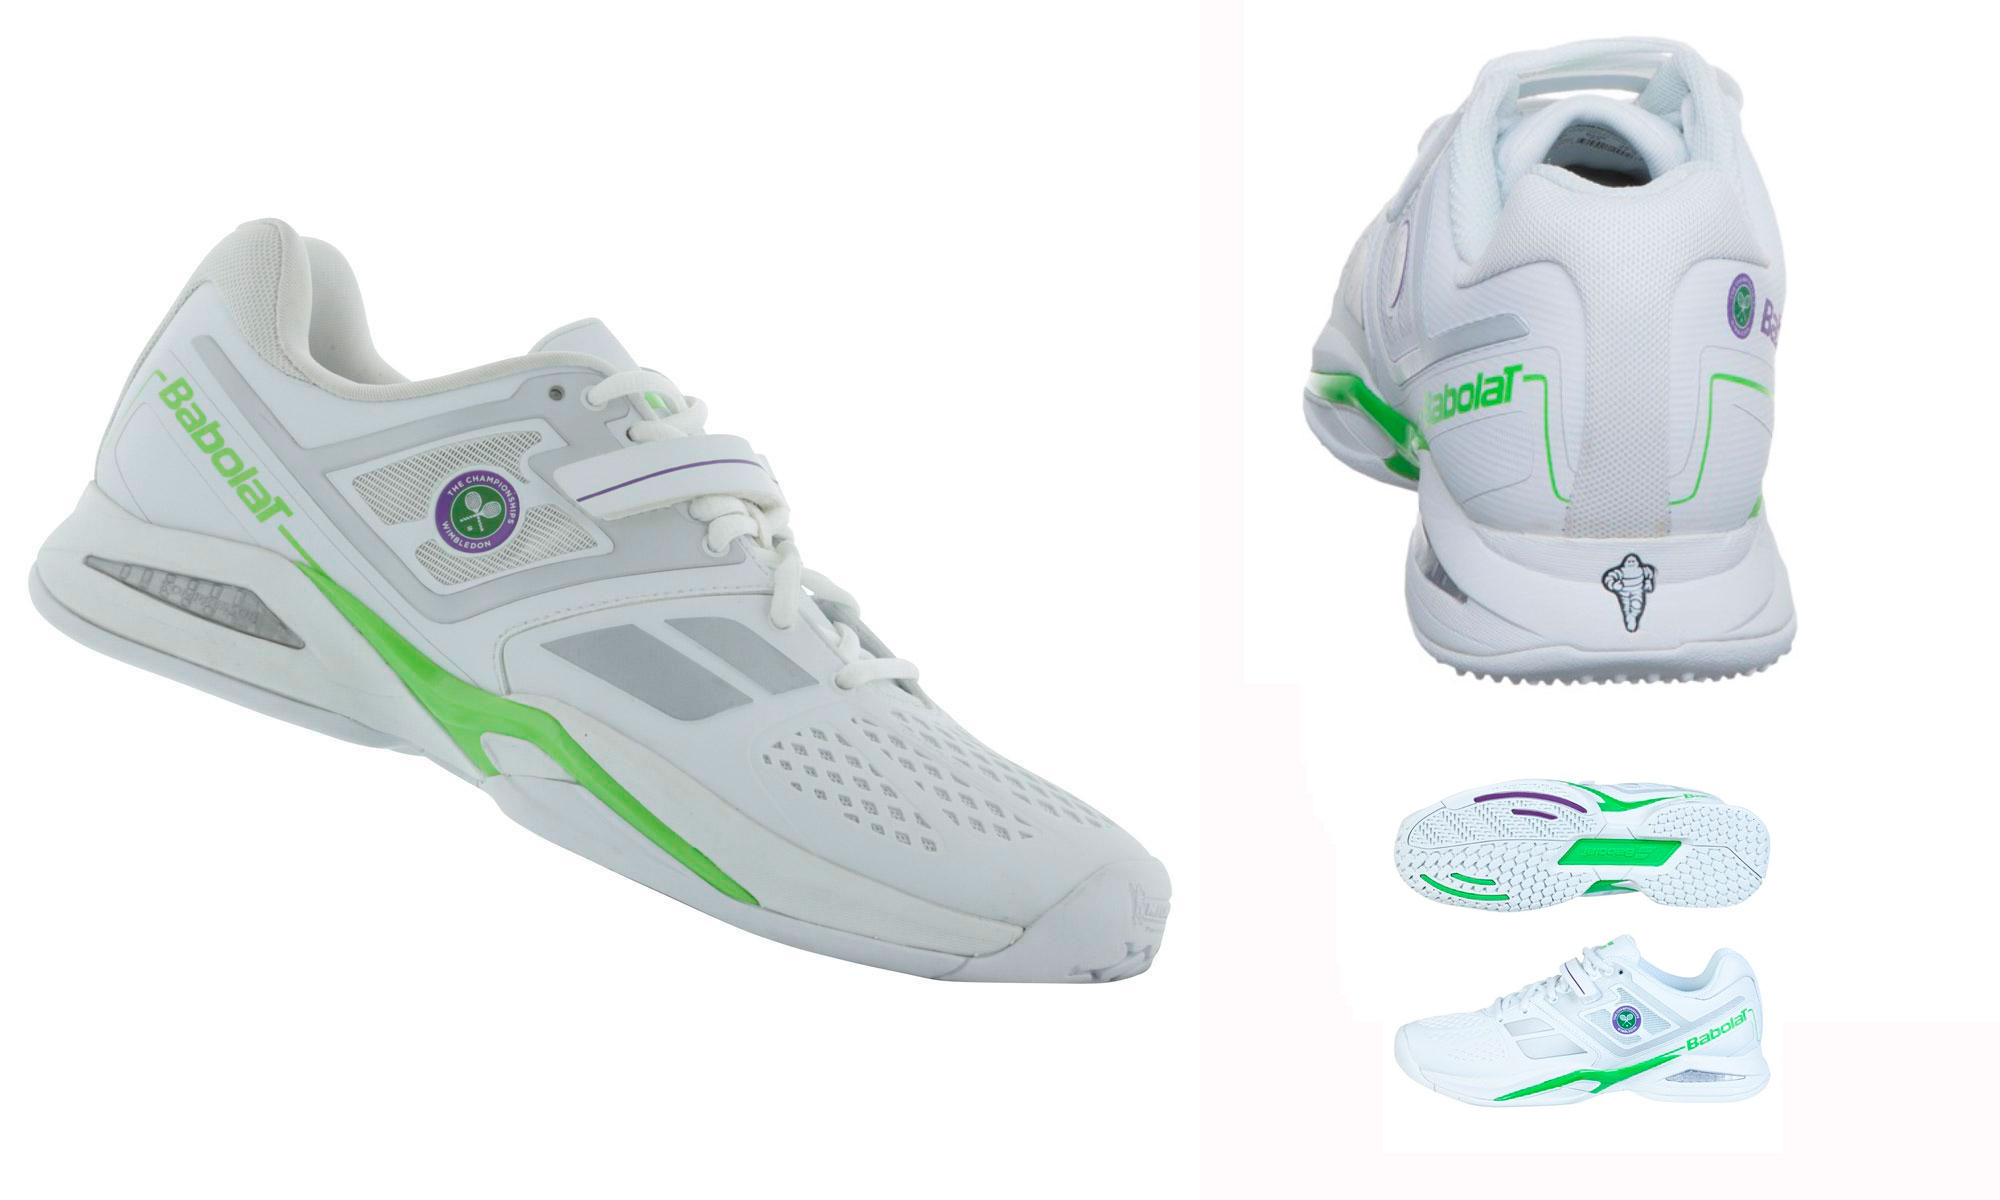 Wimbledon 2015 ball girls boys Babolat tennis shoes